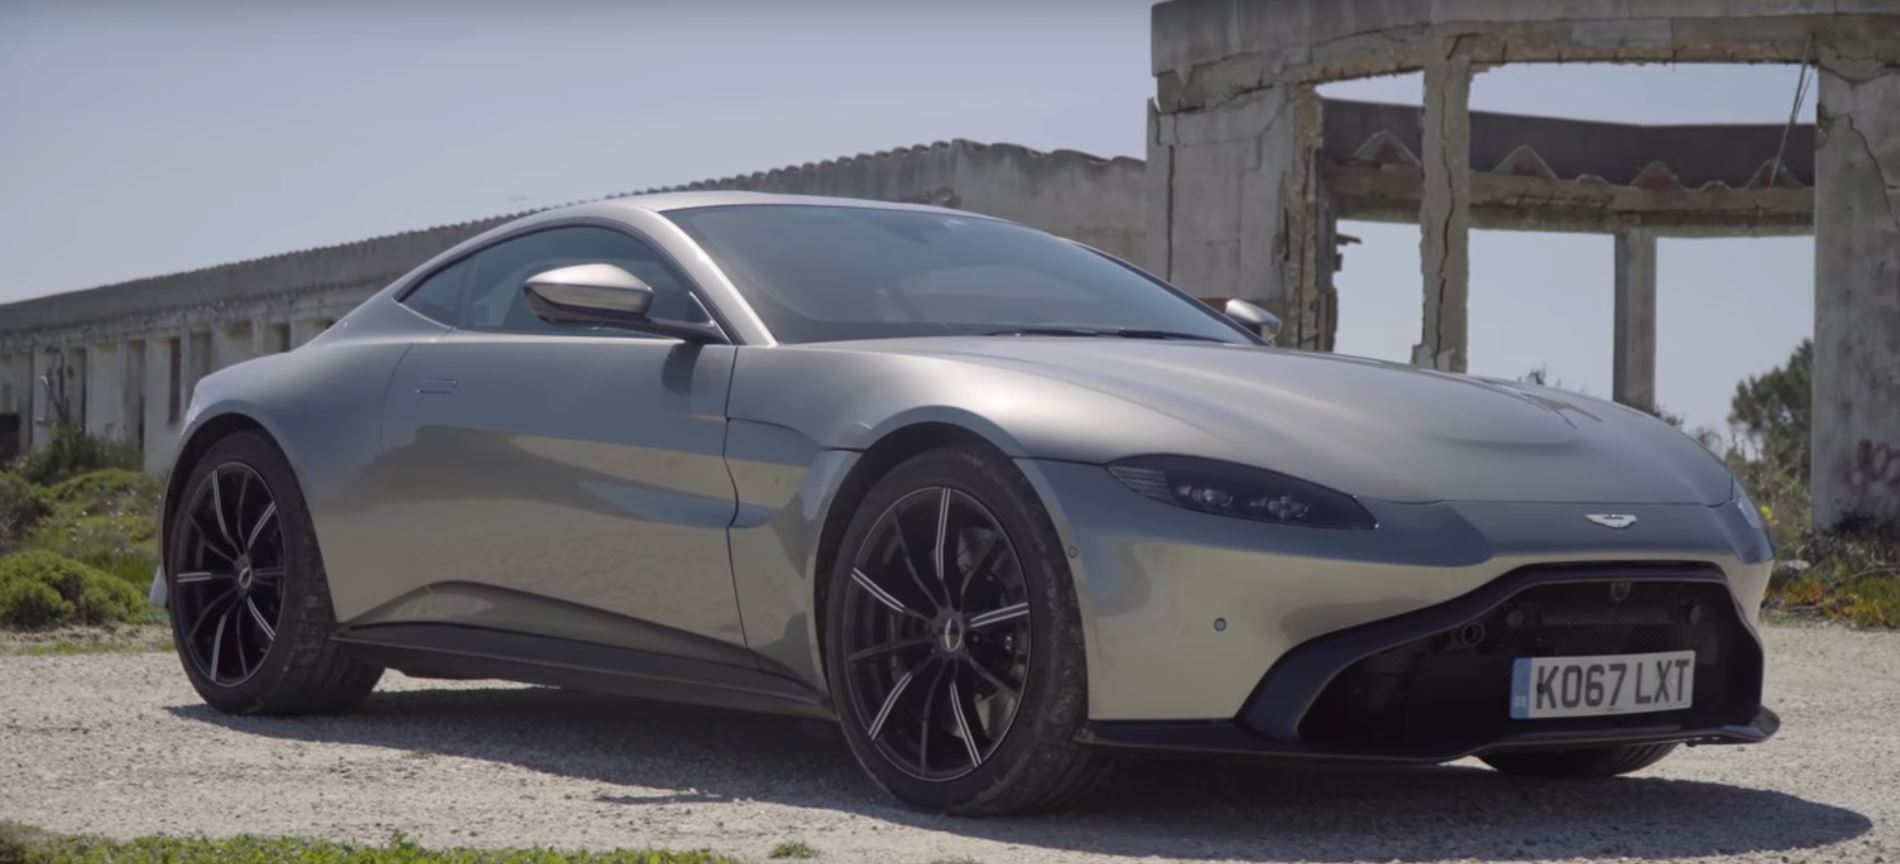 All-New Aston Martin Vantage Reviewed Against Previous Generations ...